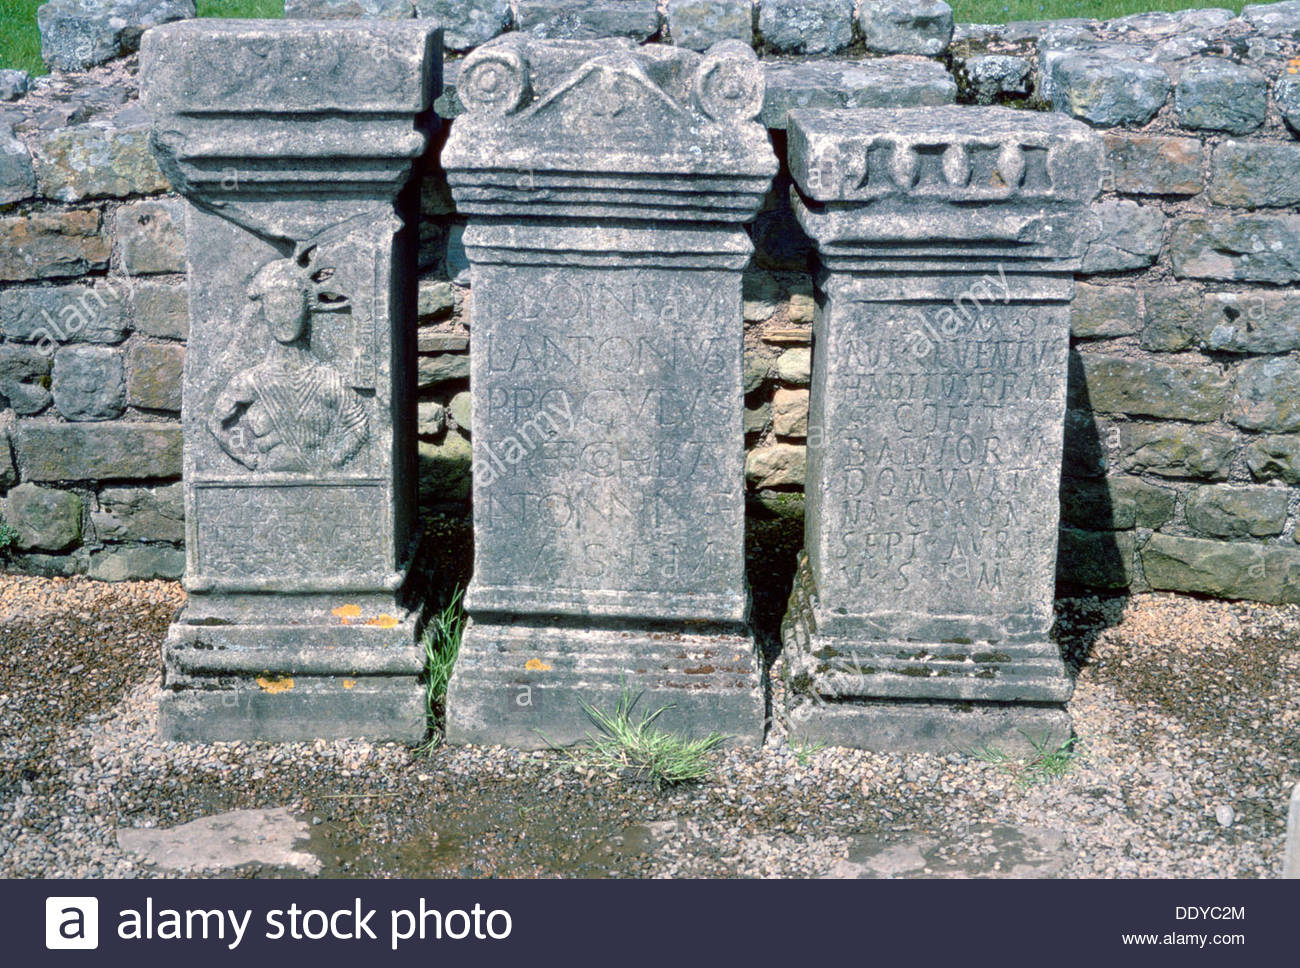 3rd century altars, Temple to Mithras on Hadrian's Wall, Northumberland. Artist: Dorothy Burrows - Stock Image